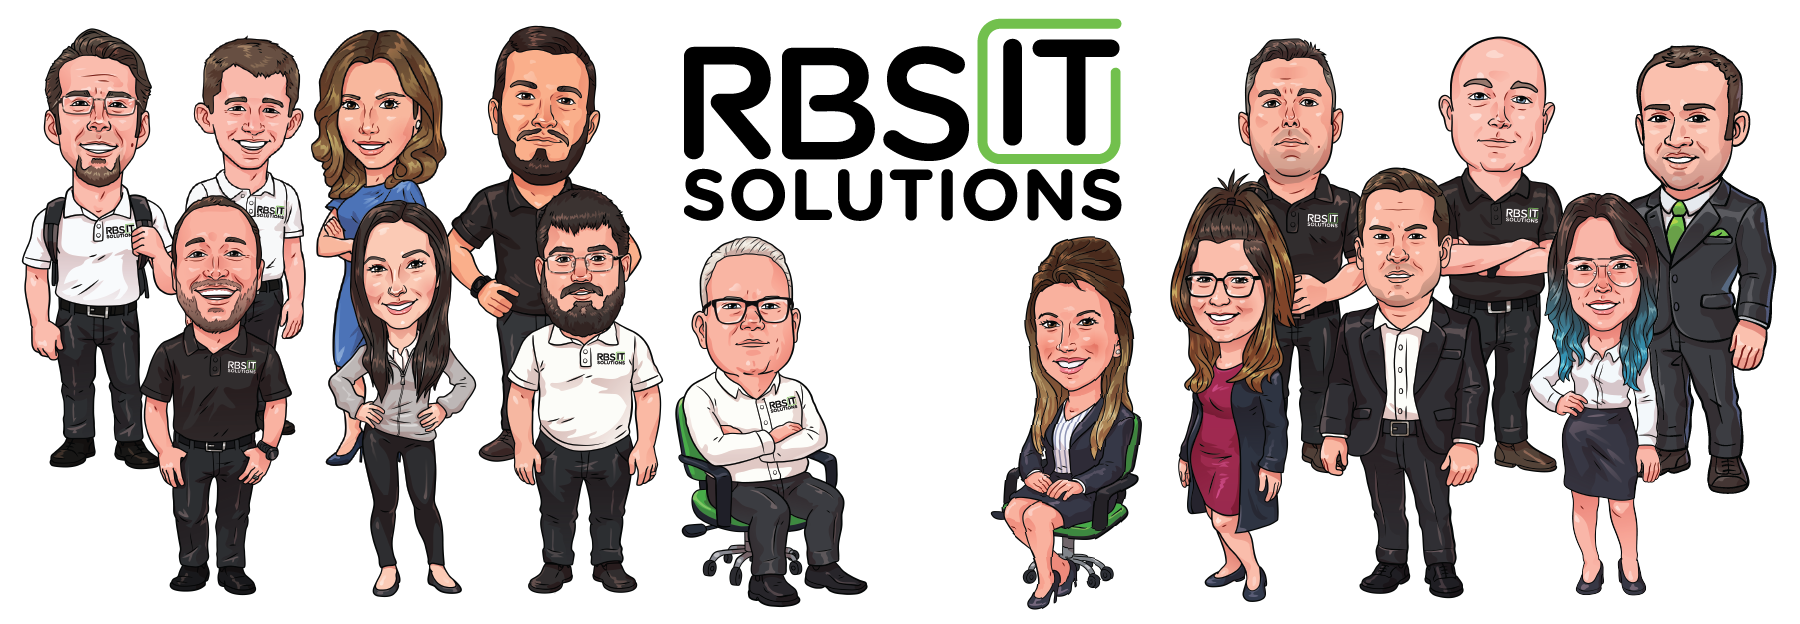 With fast, expert IT support, the friendly staff at RBS IT Solutions provides strategic consulting, managed services and cybersecurity solutions for local businesses.